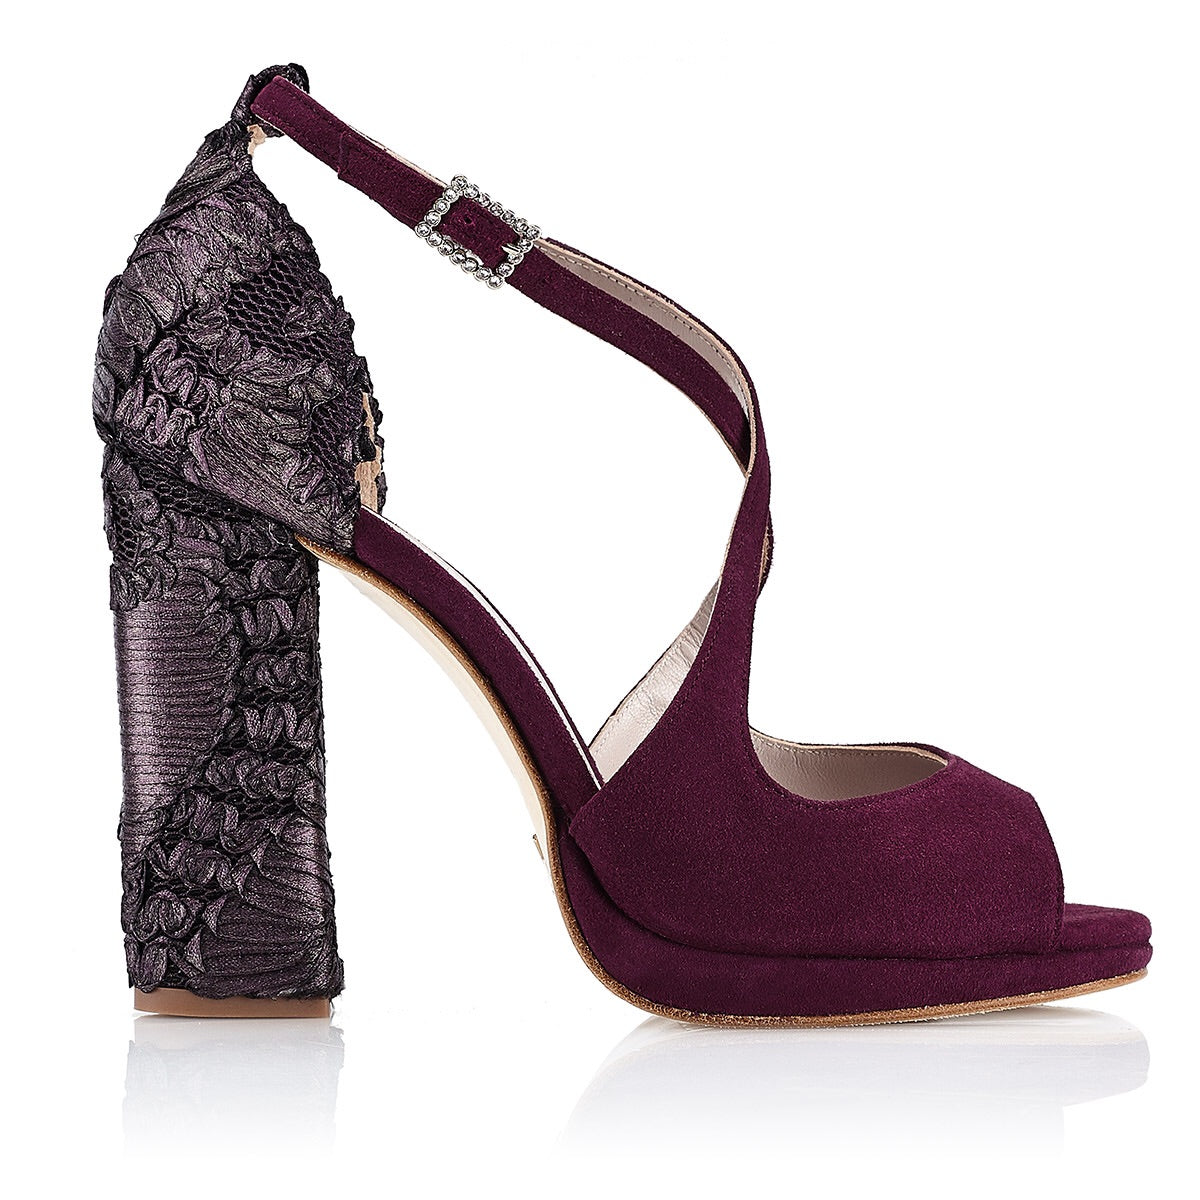 WINE CELESTINA SANDAL ( 10 cm with platform ) - Just-ENE